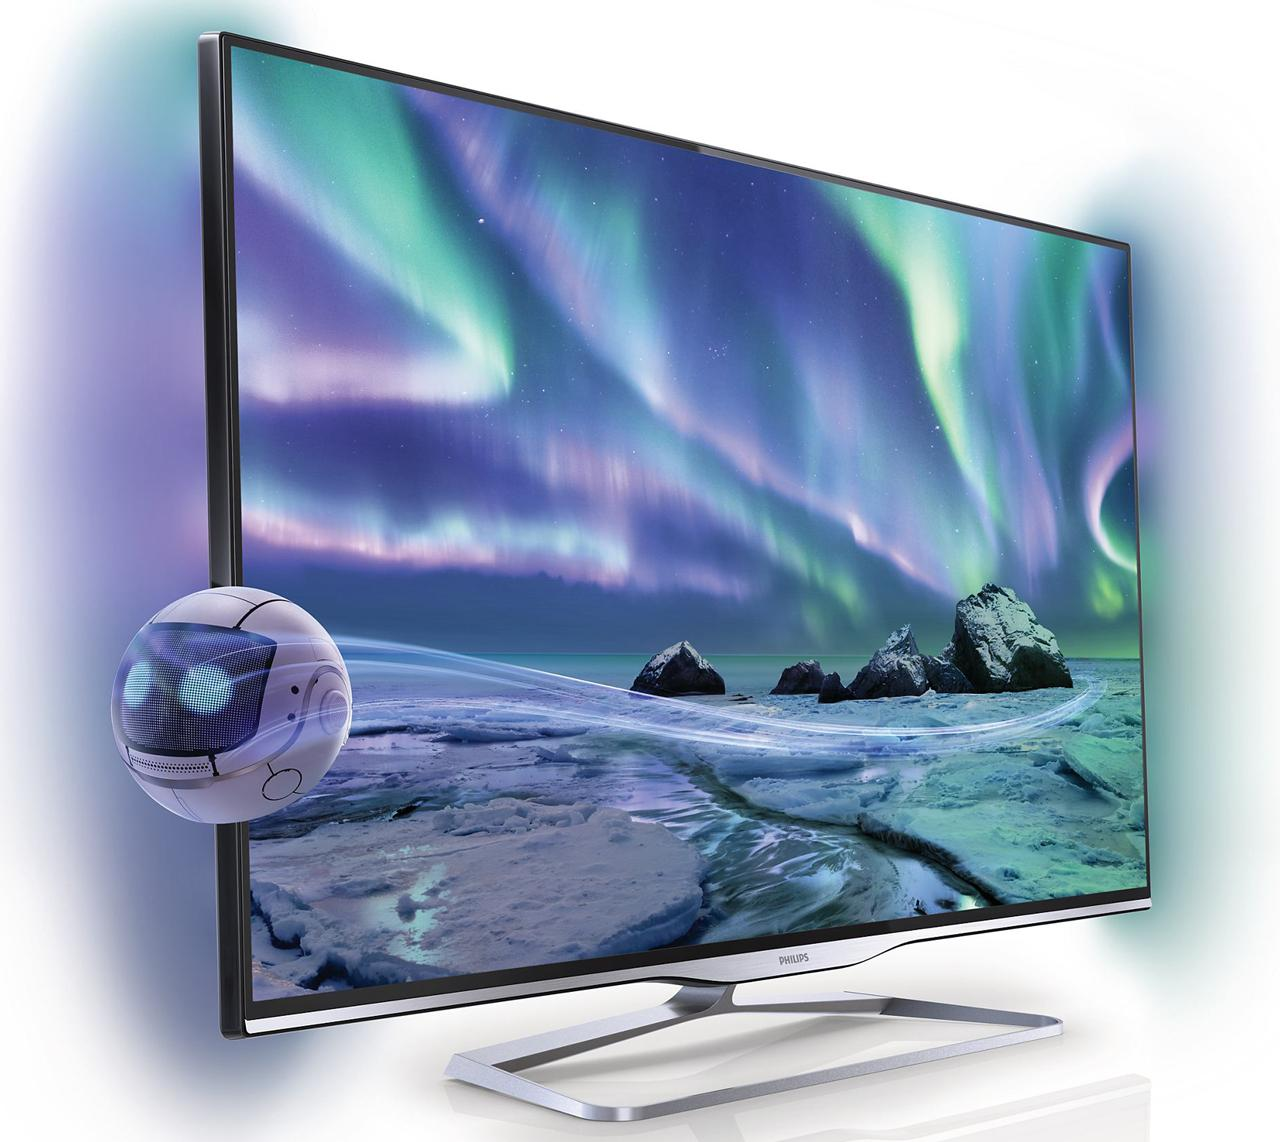 Televizor-LED-Smart-TV-3D-Philips-42PFL5008K-semiprofil